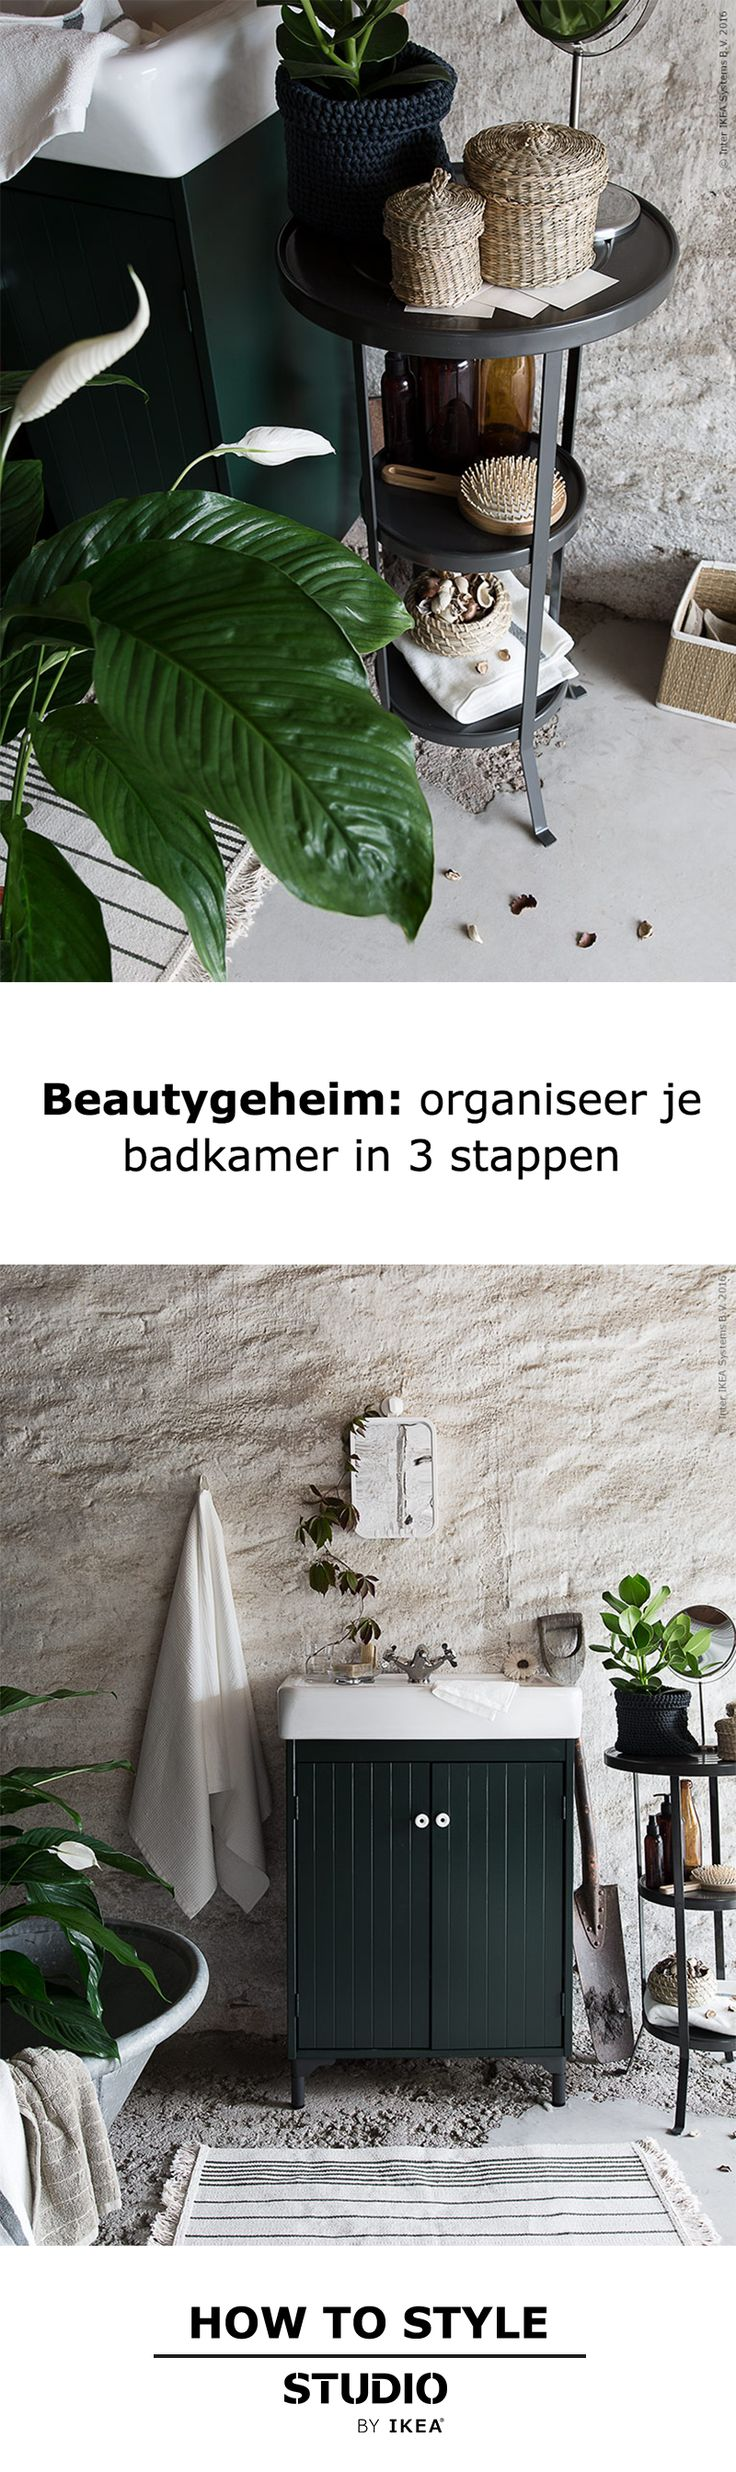 1000+ images about Wooninspiratie - How To Style on Pinterest ...